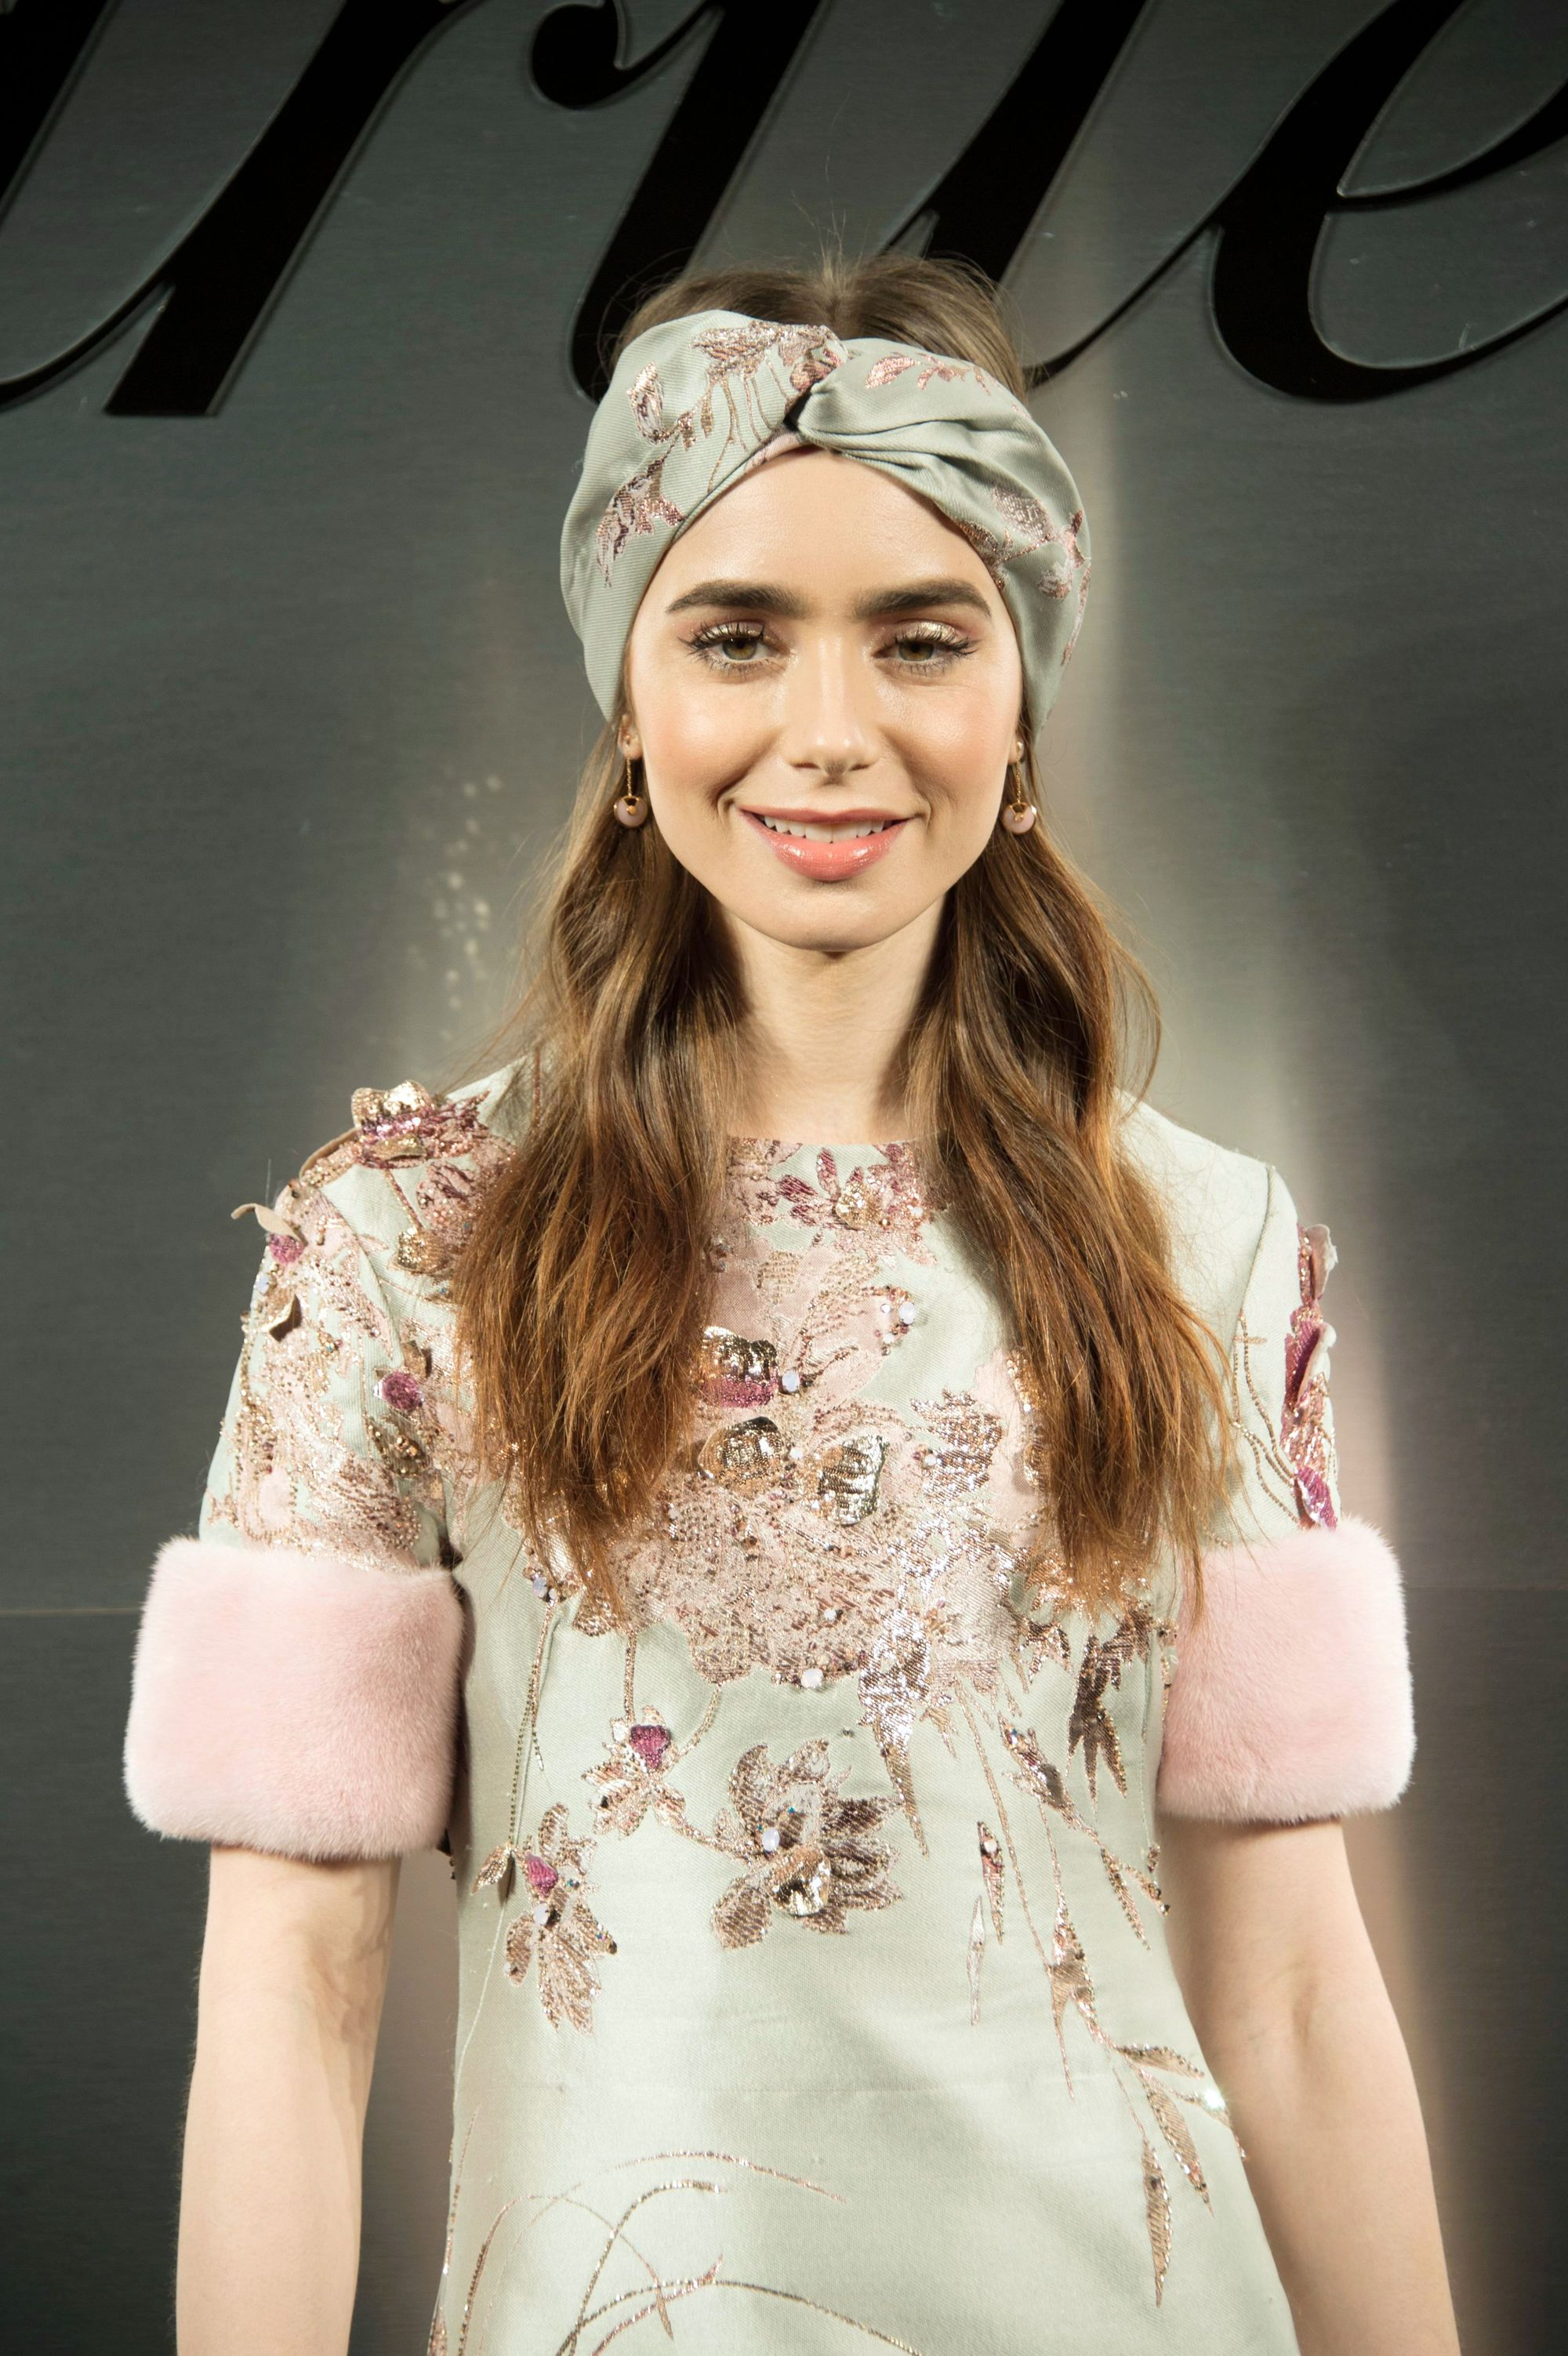 Lily Collins long wavy light brown hair with turban style headband at red carpet industry event.